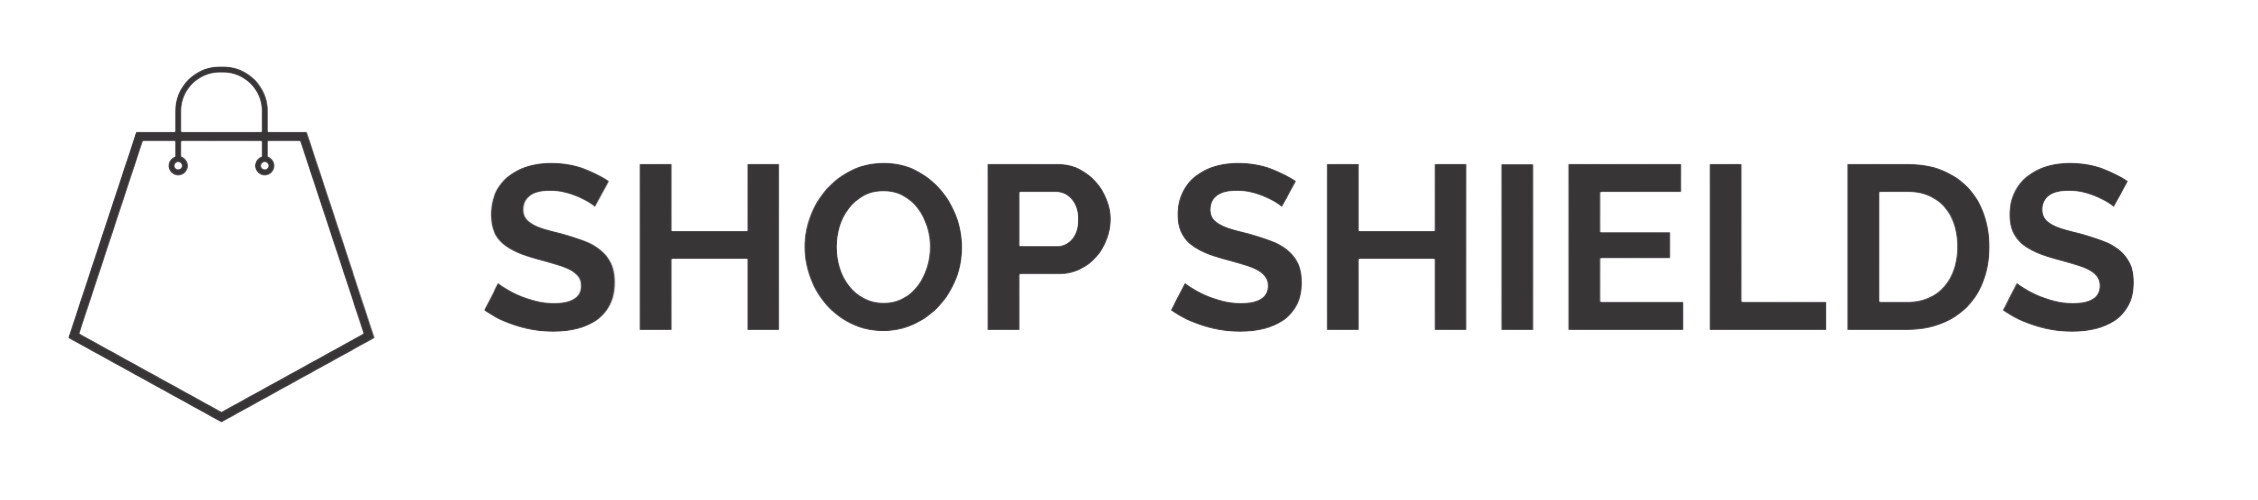 shopshields.co.uk